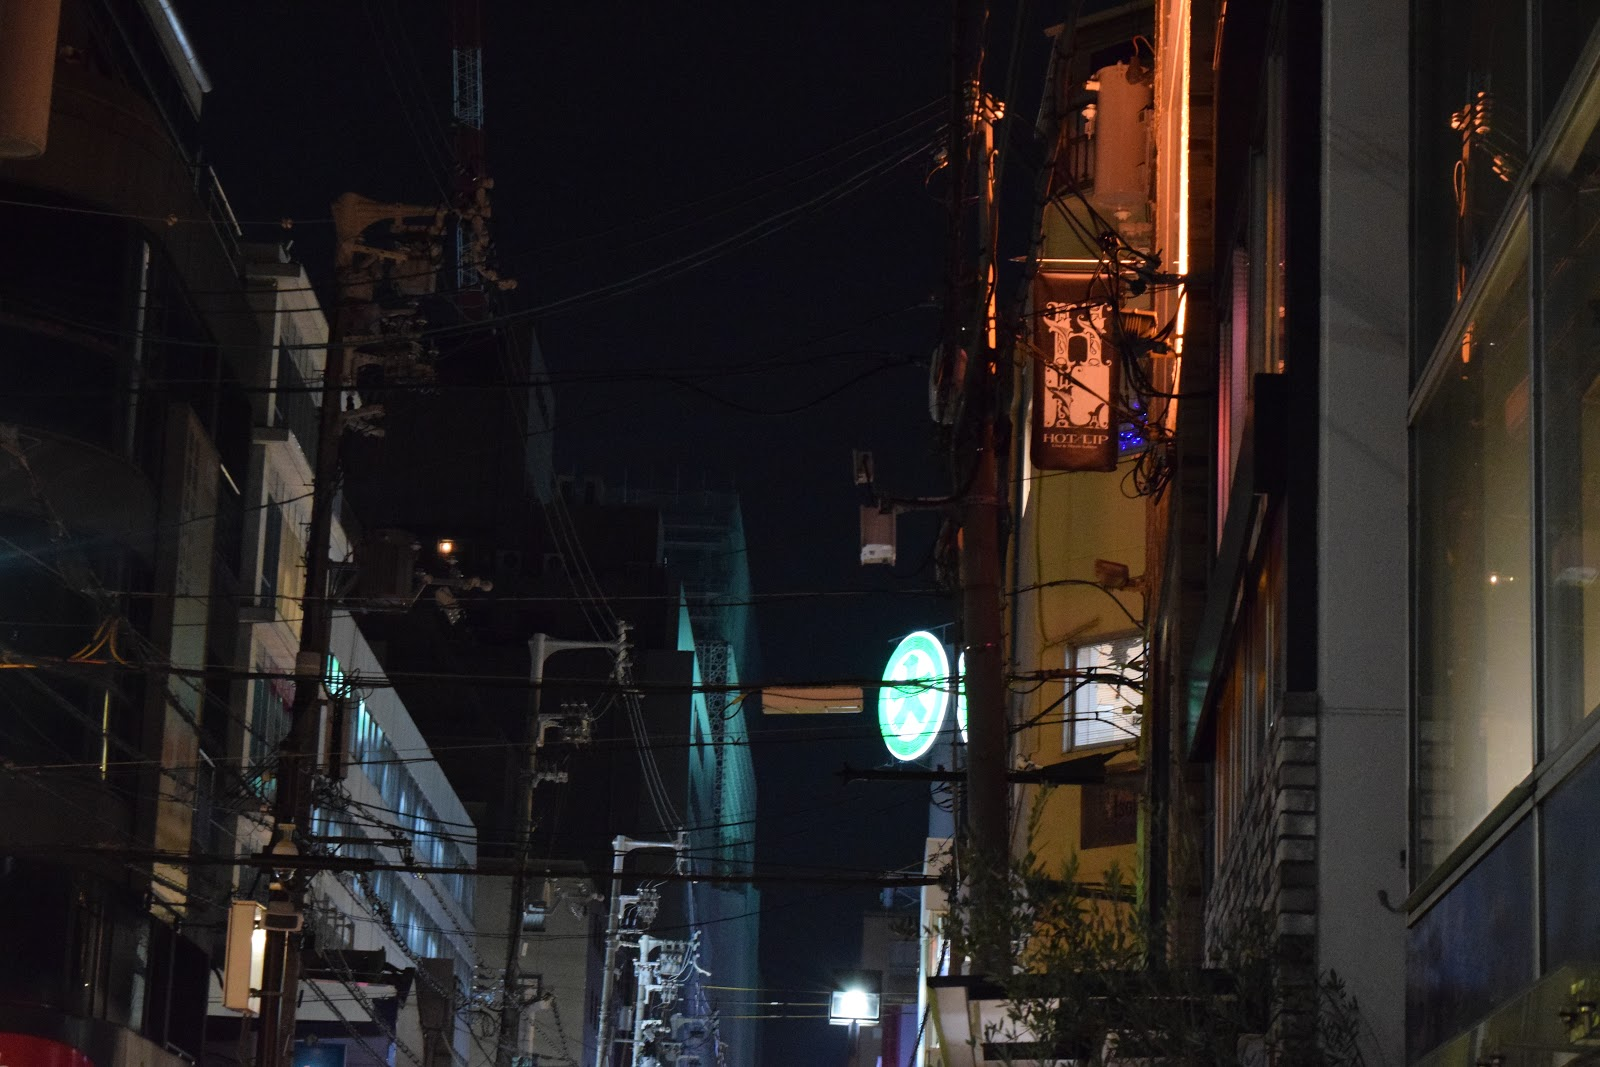 street lighting and overhead cables in Amemura, Osaka